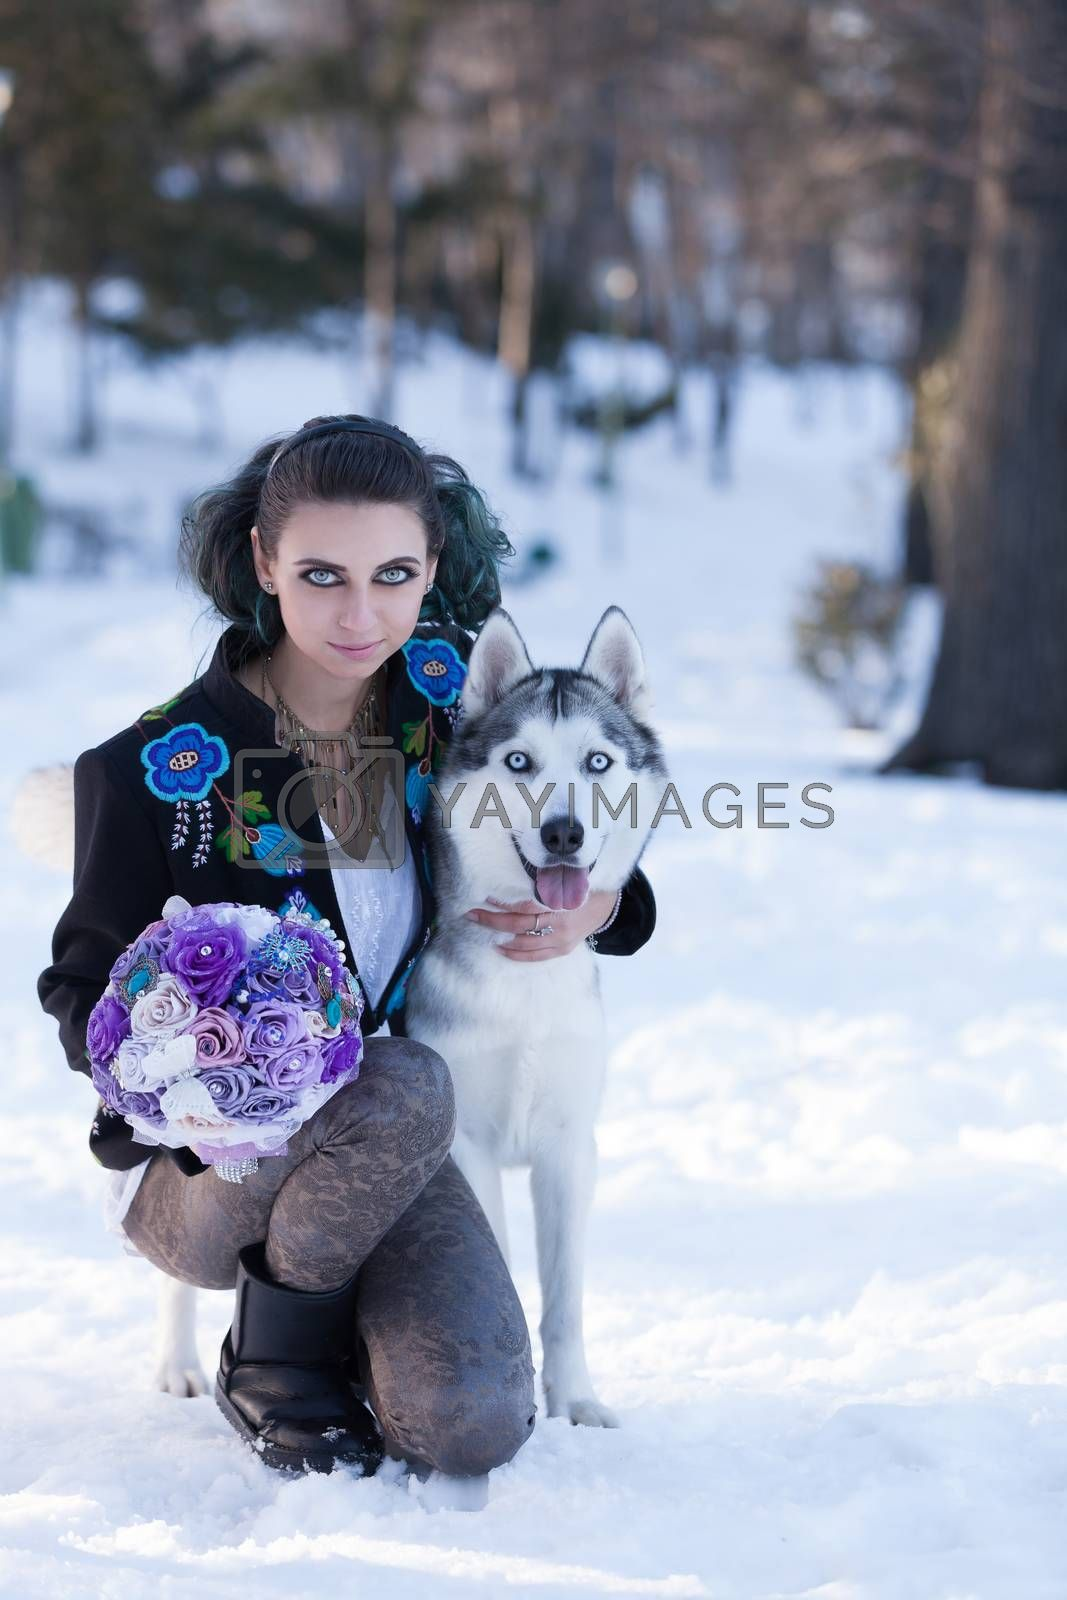 Young girl portrait with lovely big eyes holding a paper flower bouquet while is embracing a husly dog.